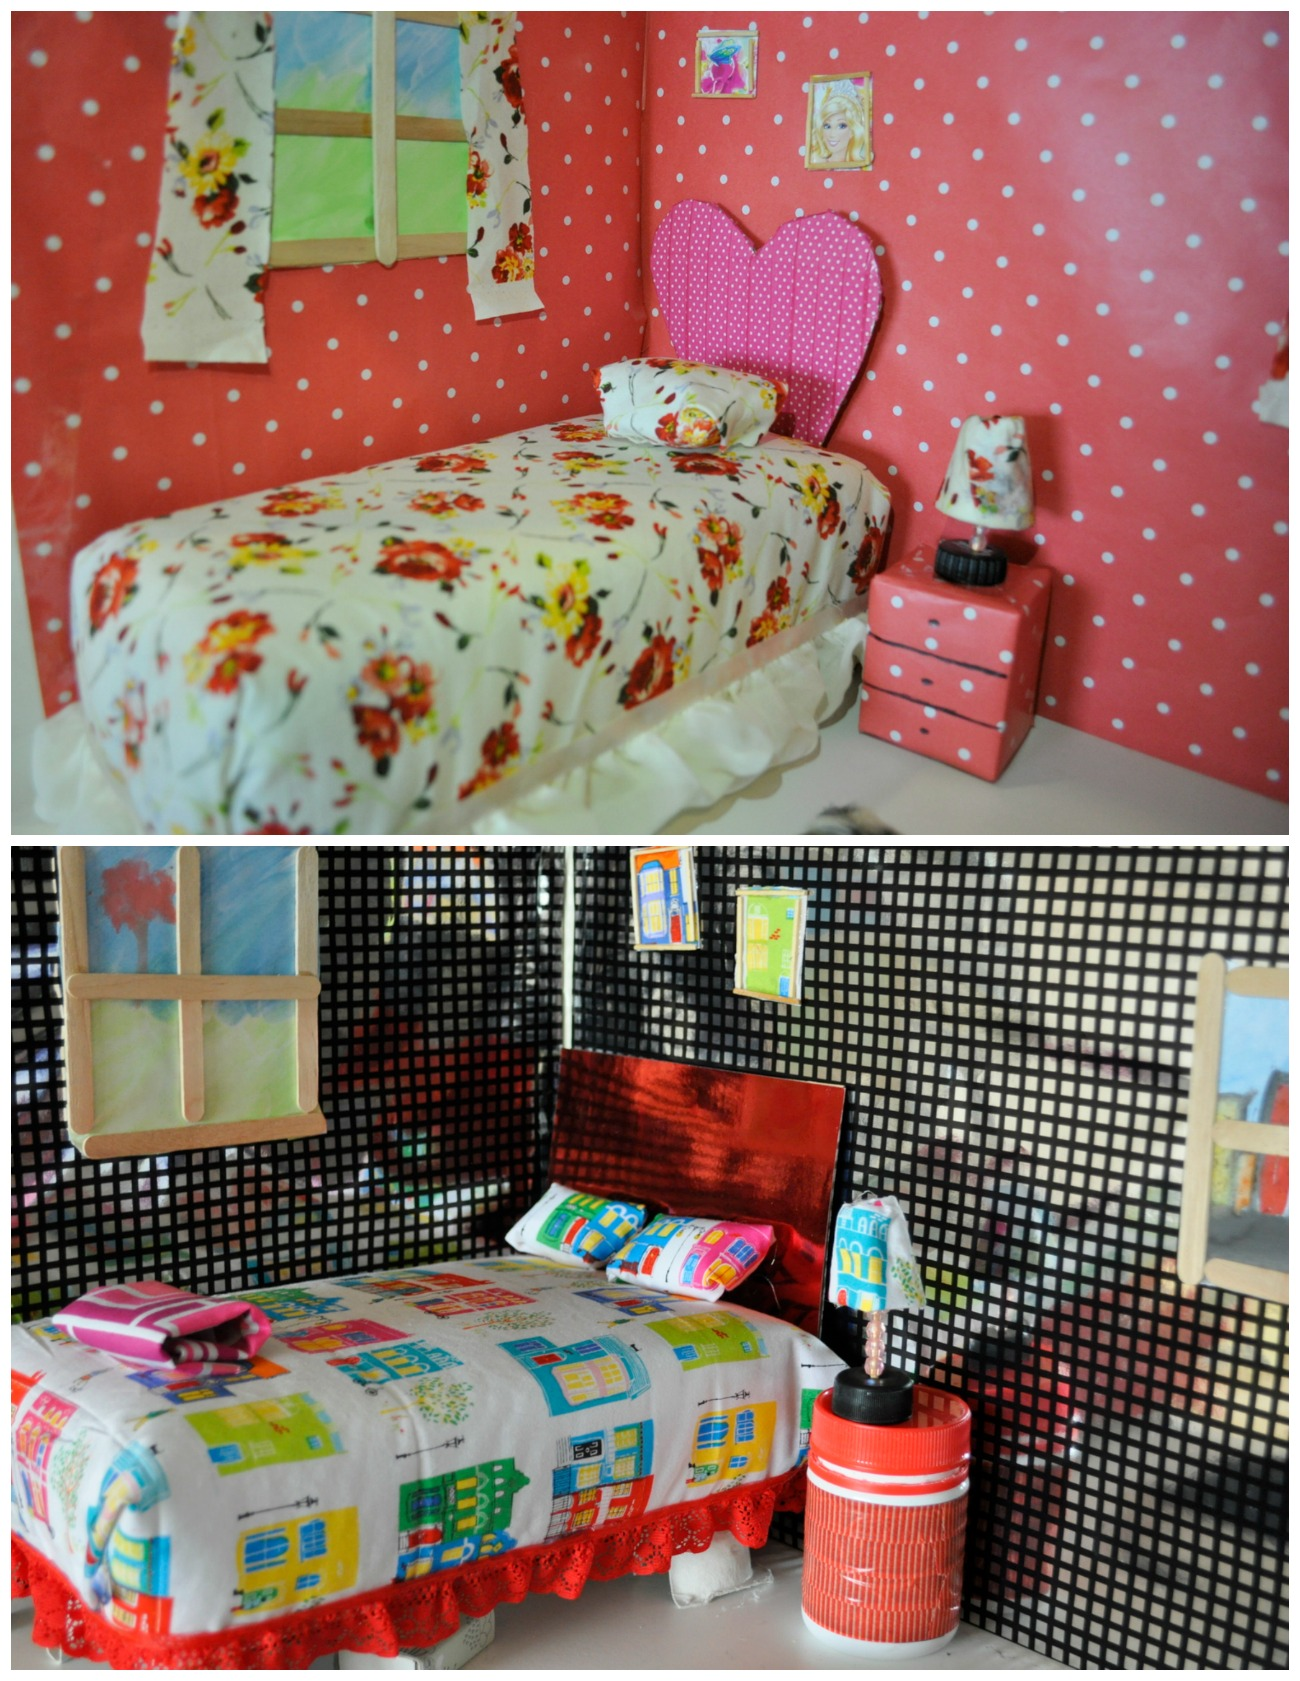 How to make a Barbie bed out of a recycled box